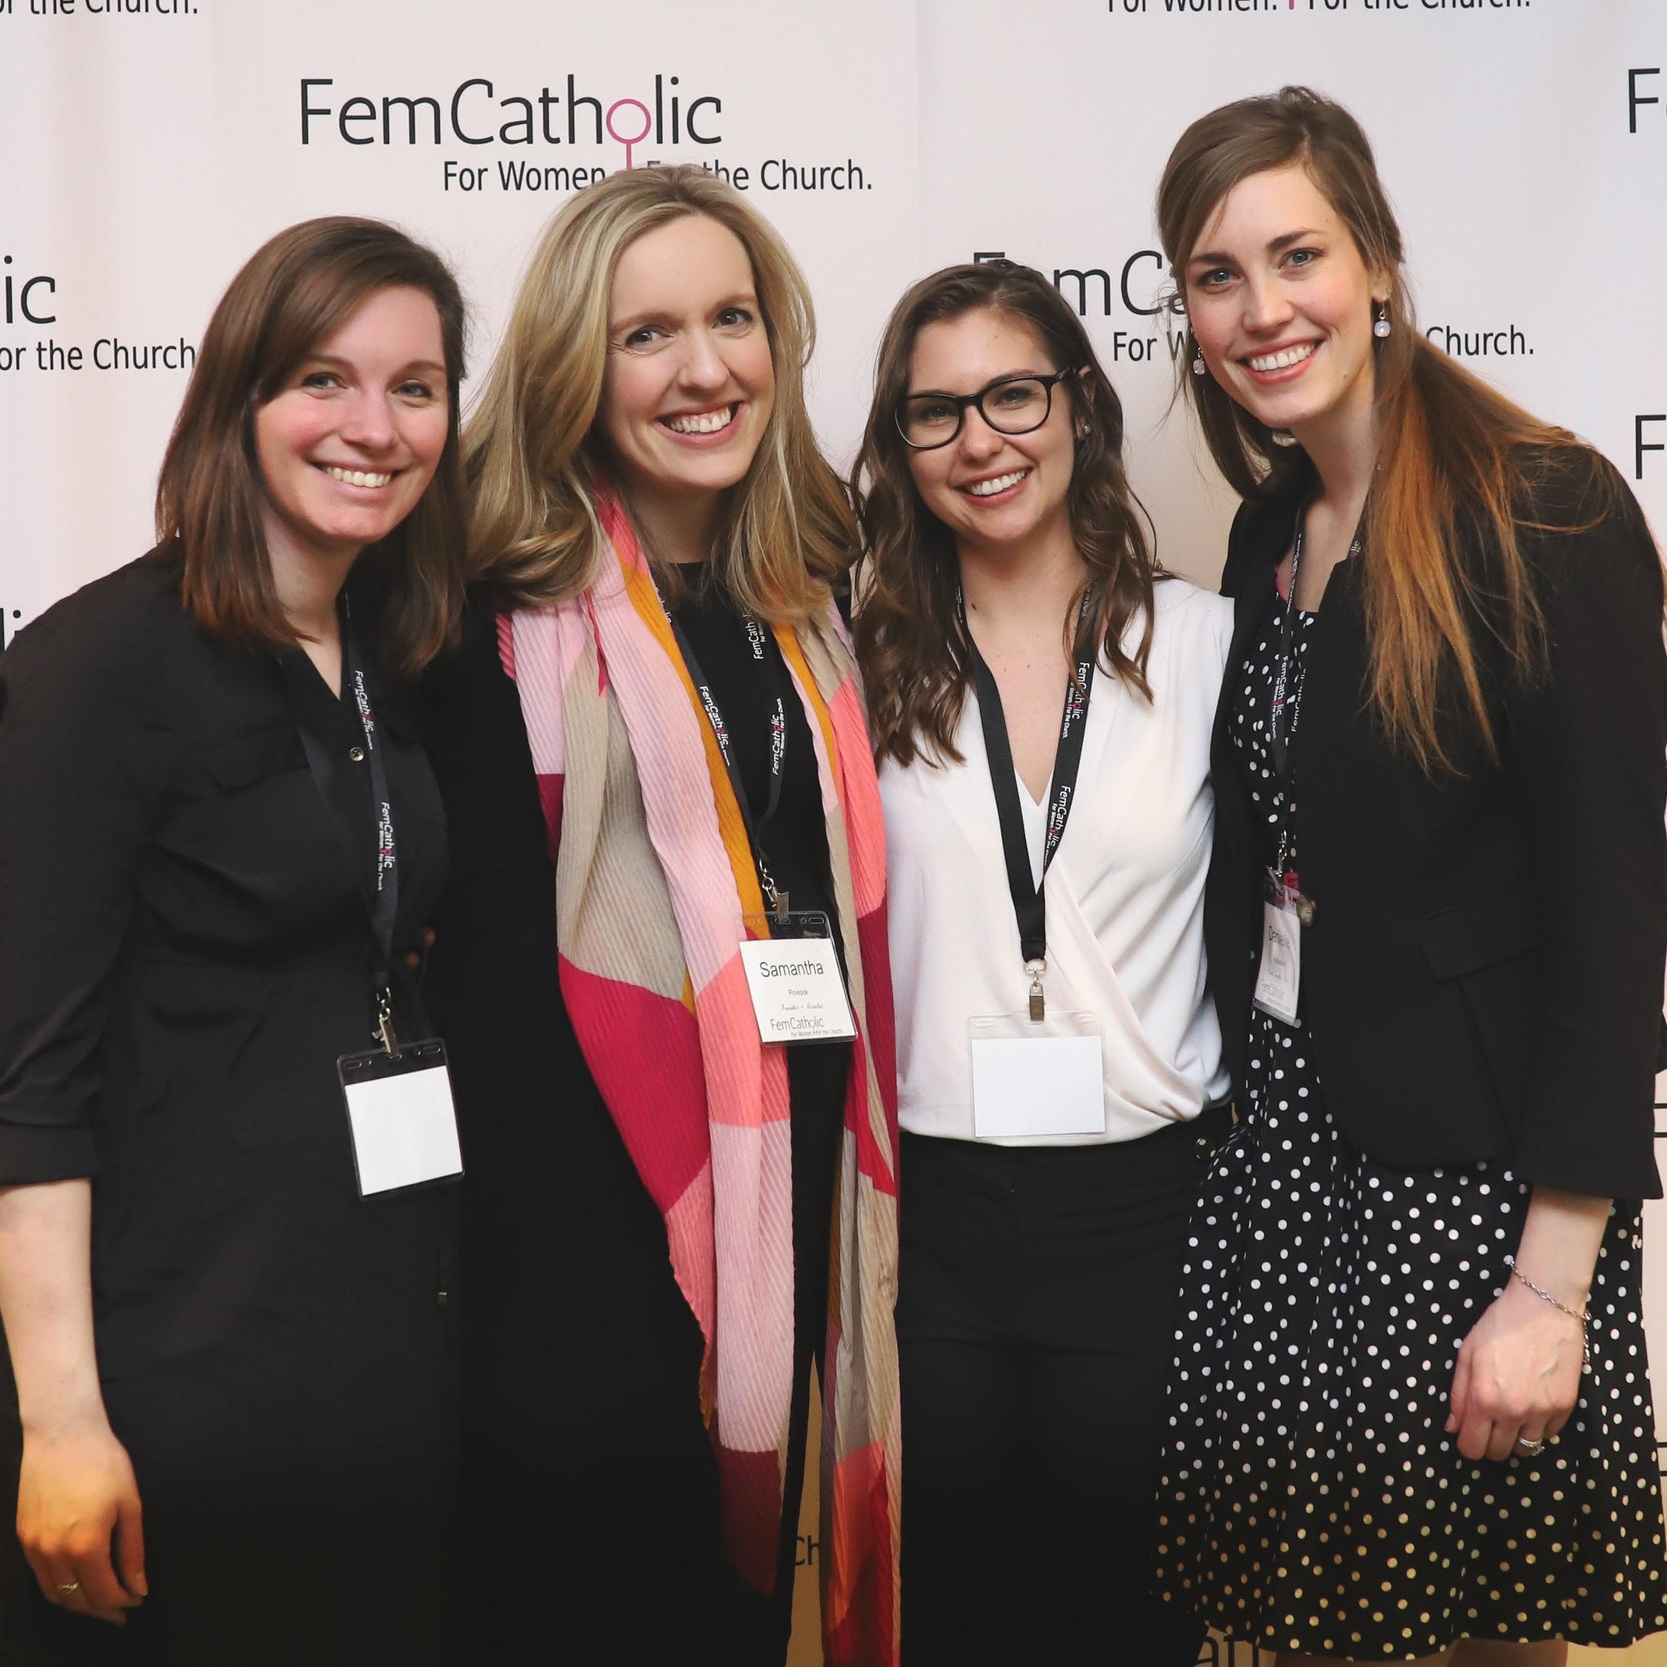 About Samantha - Samantha Povlock is the founder of FemCatholic, a platform working to reconcile feminism and Catholicism that hosted their first conference in March 2019. Sam is a corporate working mom of two, a Notre Dame grad, and transplant to Chicago.